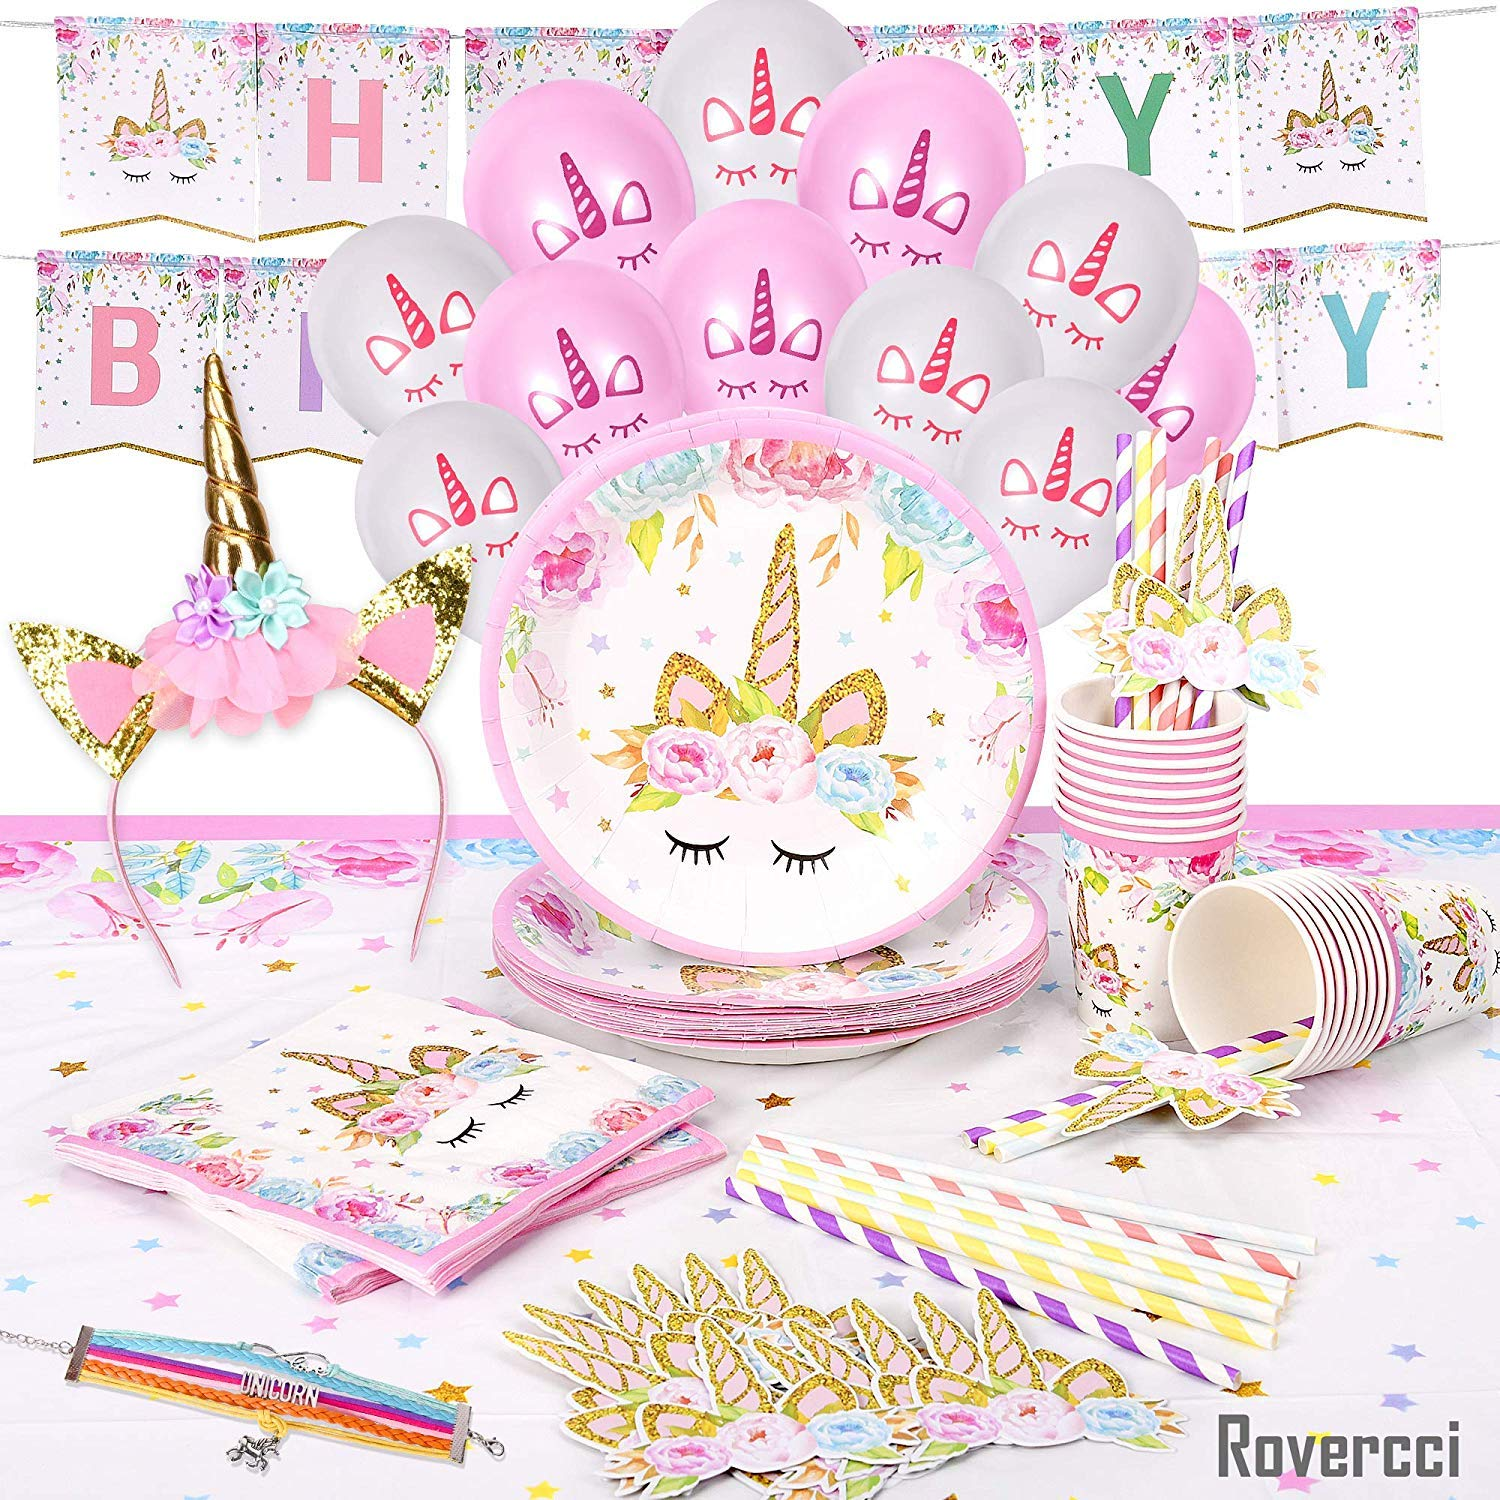 Unicorn Party Supplies Set & Tableware Kit   Birthday Decorations Bunting, Disposable Paper Plates, Cups, Napkins, Straws, Plastic Table Cloth, & Bonus Balloons, Bracelet, Head Band - Serves 16 by Rovercci